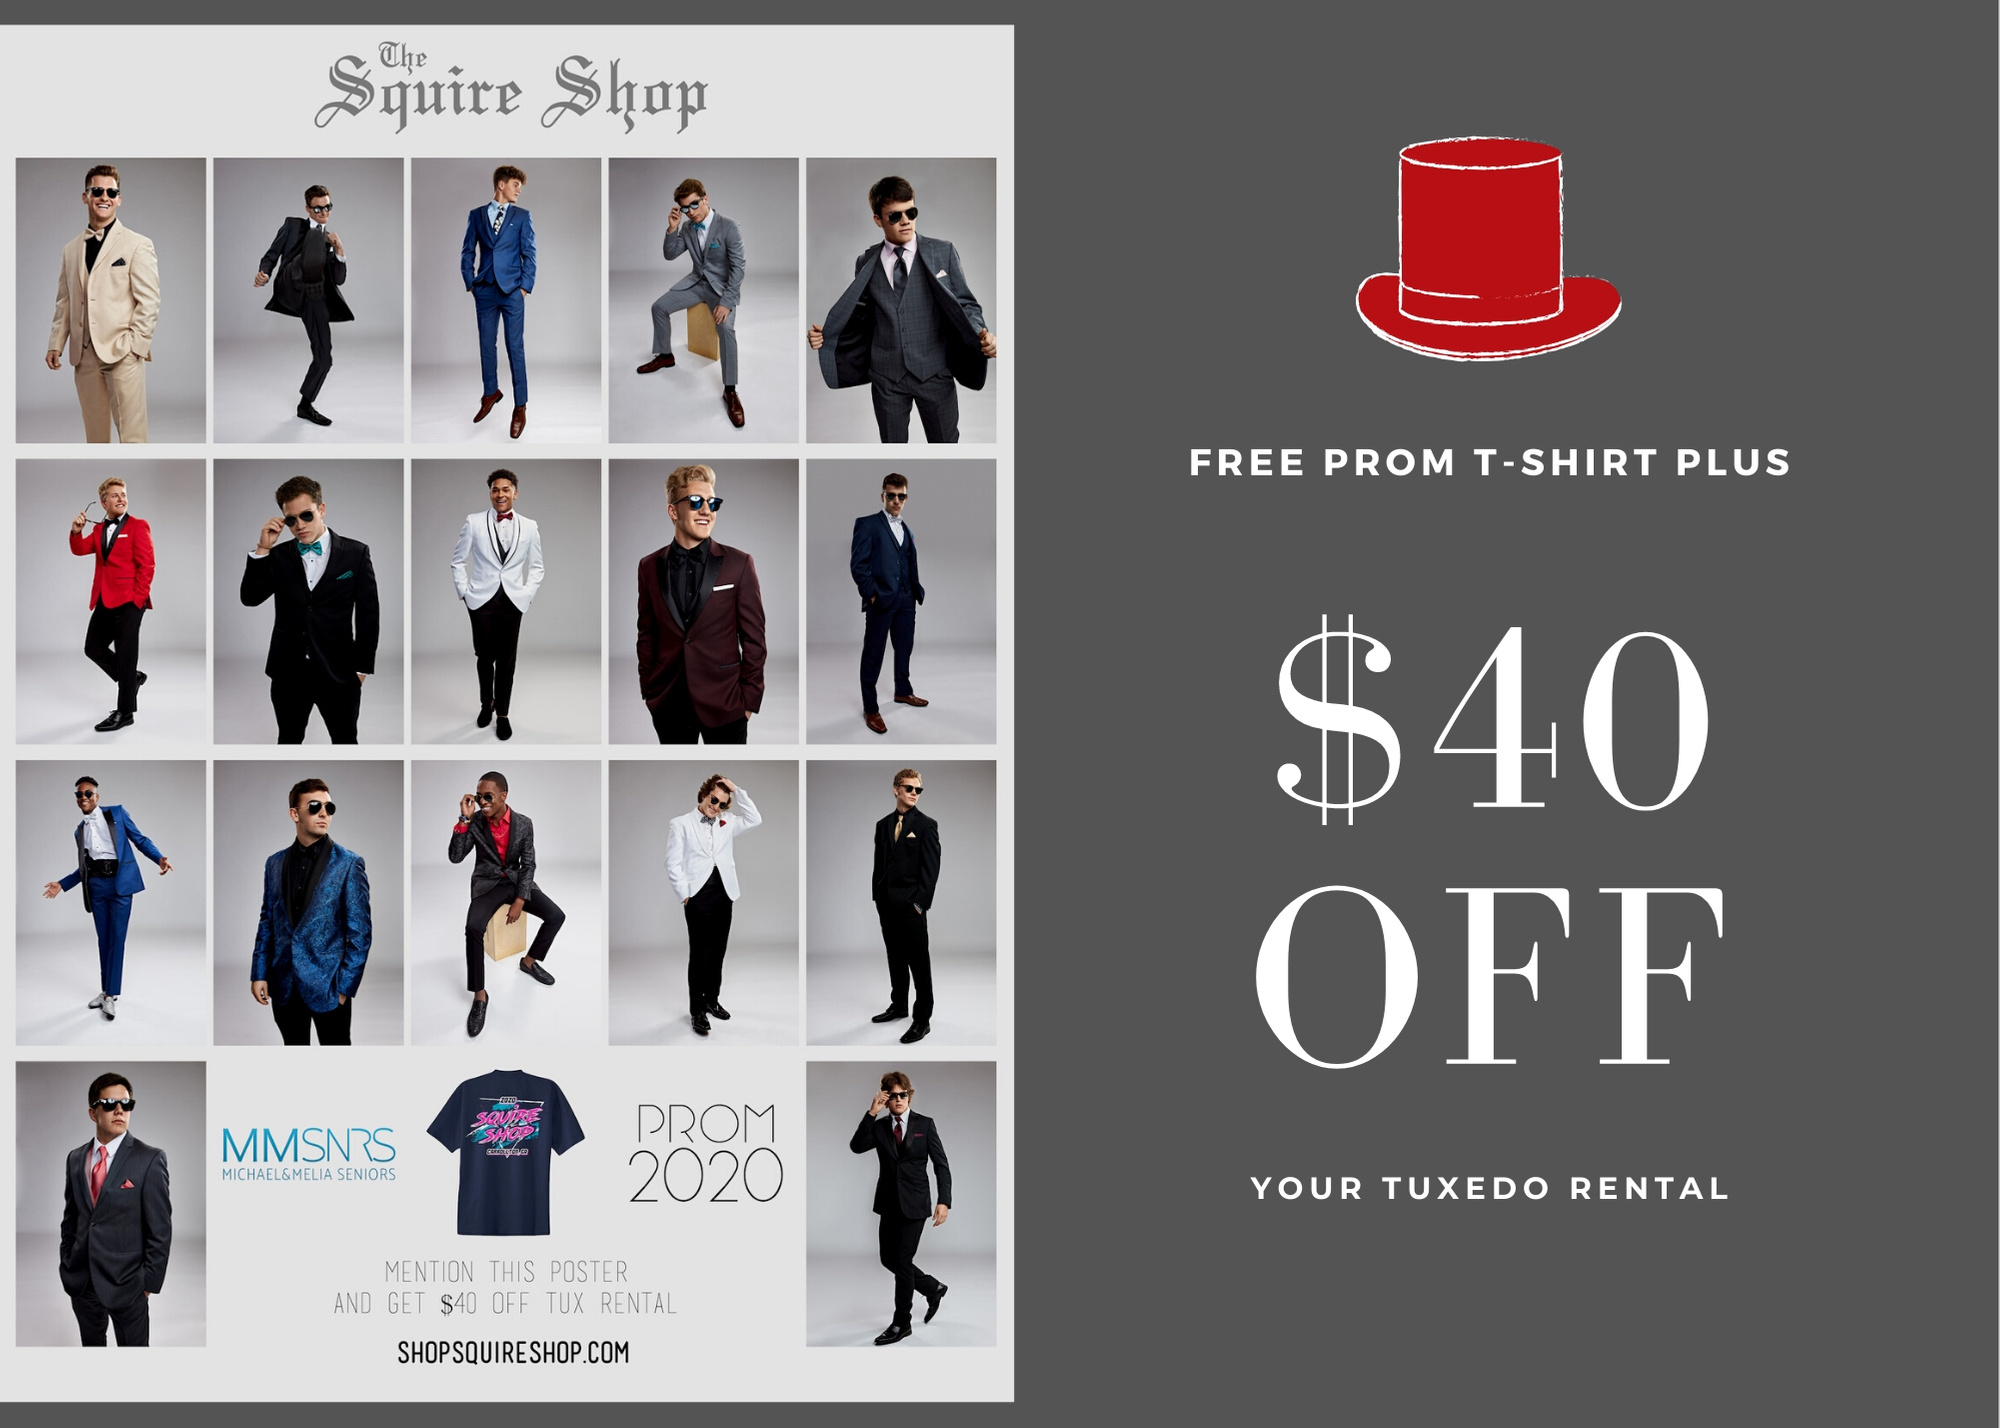 $40 off and Free Prom T-Shirt with Tuxedo Rental